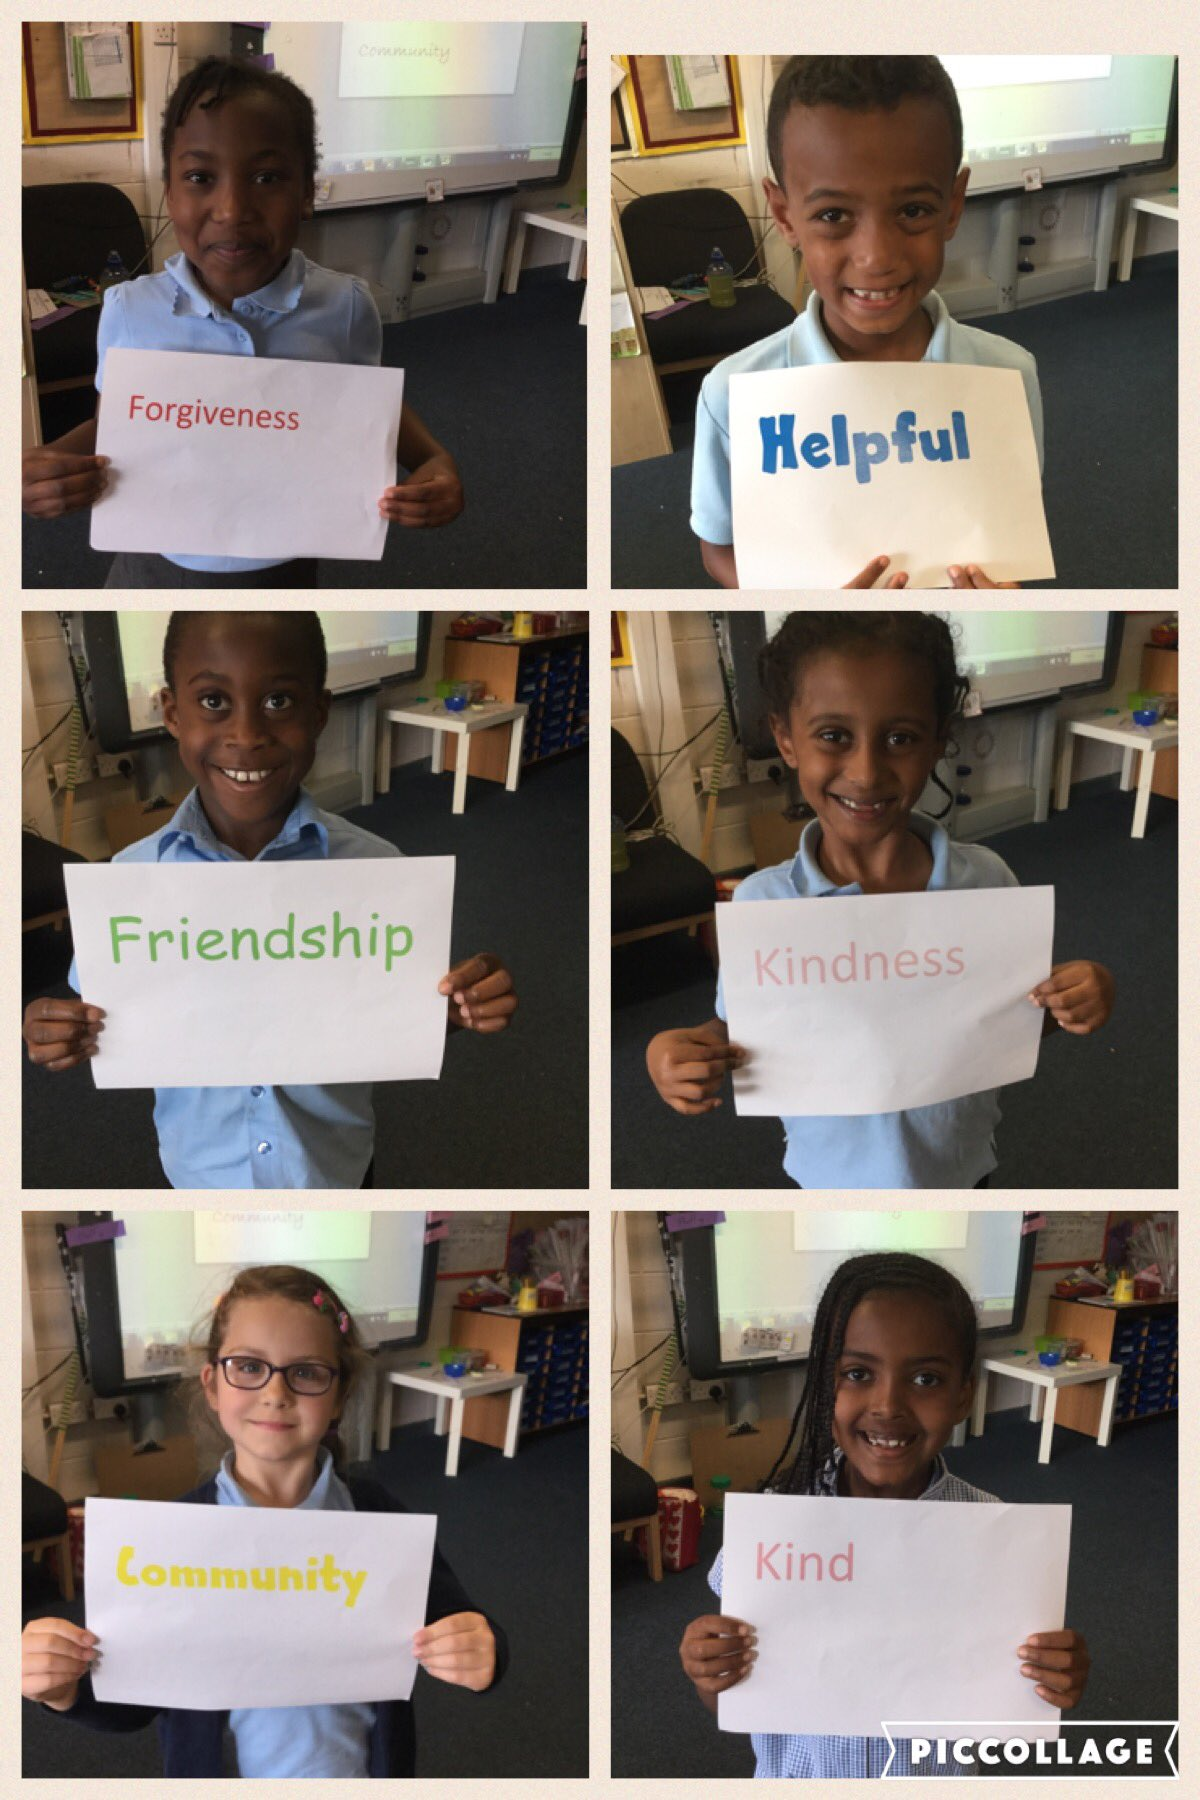 We've used the laptops with #missfranks to create our welcoming words for @RefugeeWeek #refugeeswelcomeSTC https://t.co/8ideS73tu3